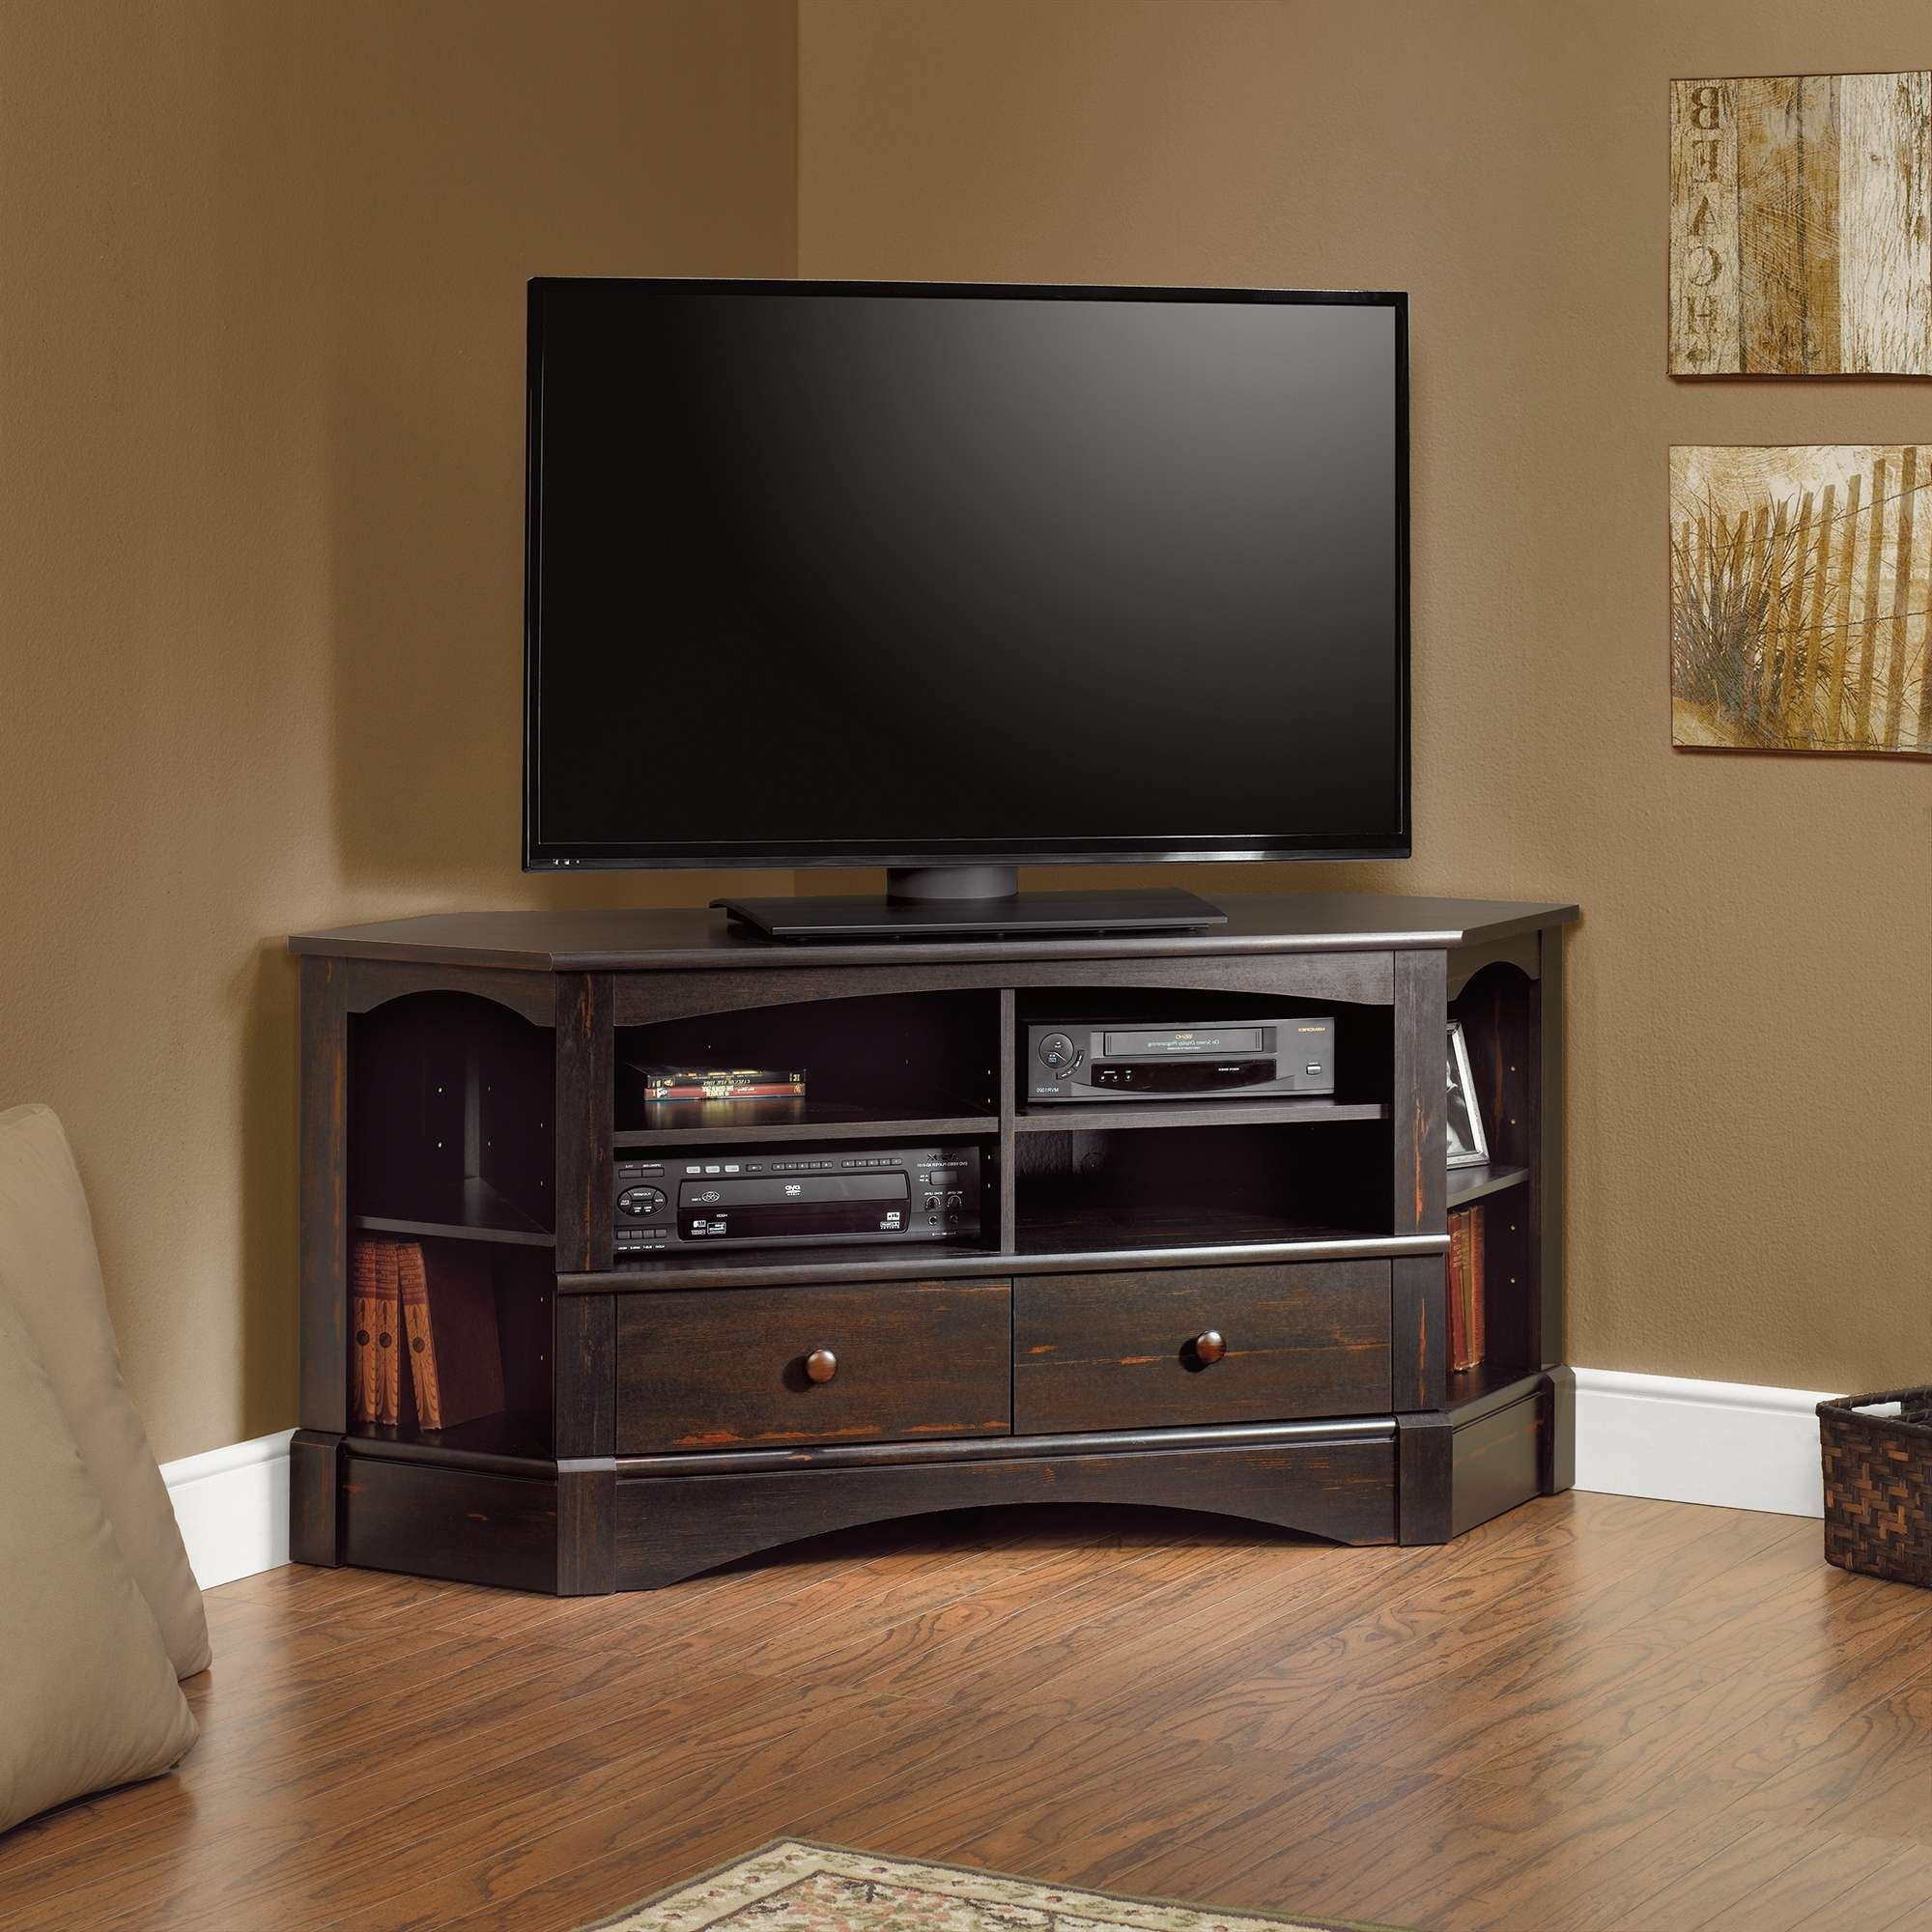 Harbor View | Corner Entertainment Credenza | 402902 | Sauder Intended For Painted Tv Stands (View 10 of 15)